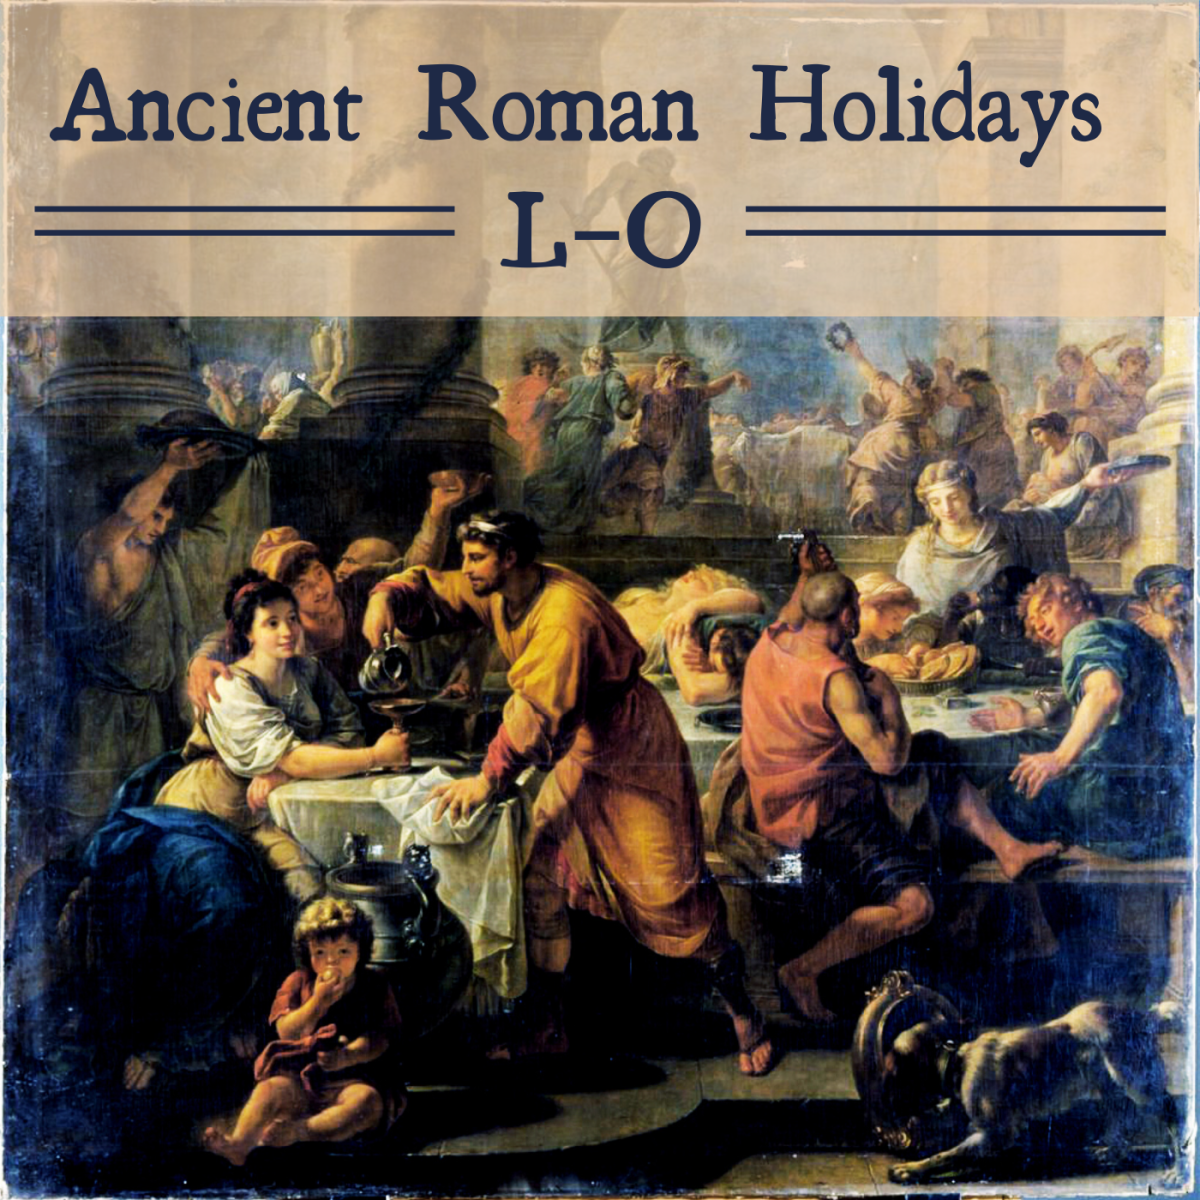 Ancient Rome was home to countless special occasions annually. Many of these existed to pay tribute to various gods and goddesses.